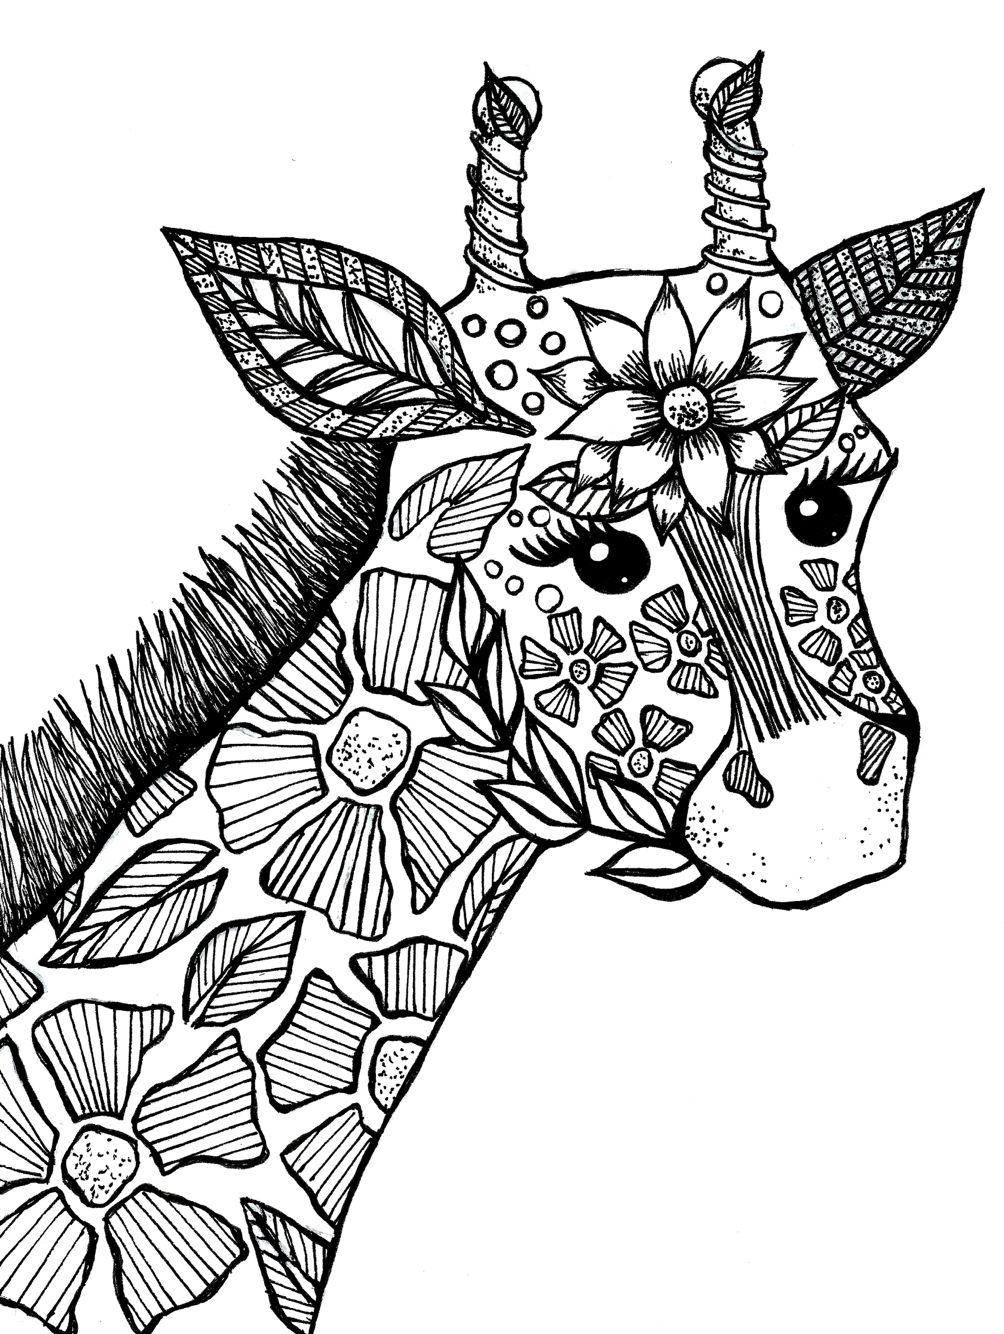 Giraffe Adult Coloring Book Page Giraffe Coloring Pages